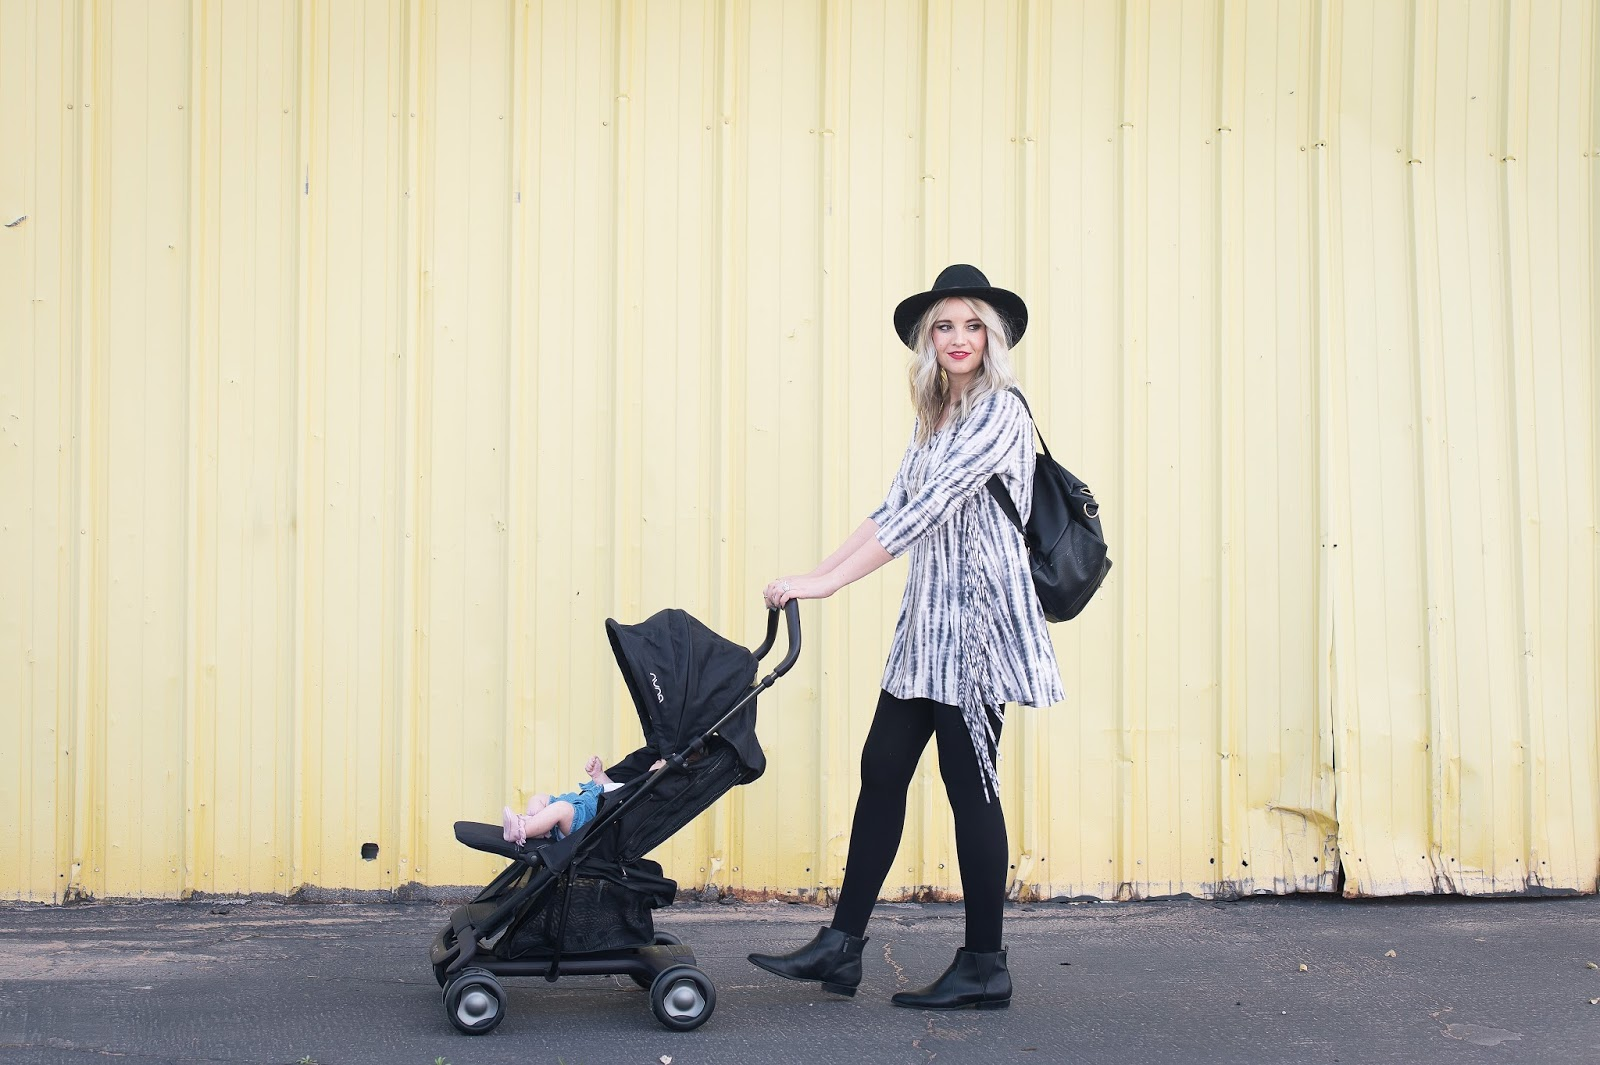 NUNA Stroller, Fawn Design Diaper Bag, Utah Fashion Blogger